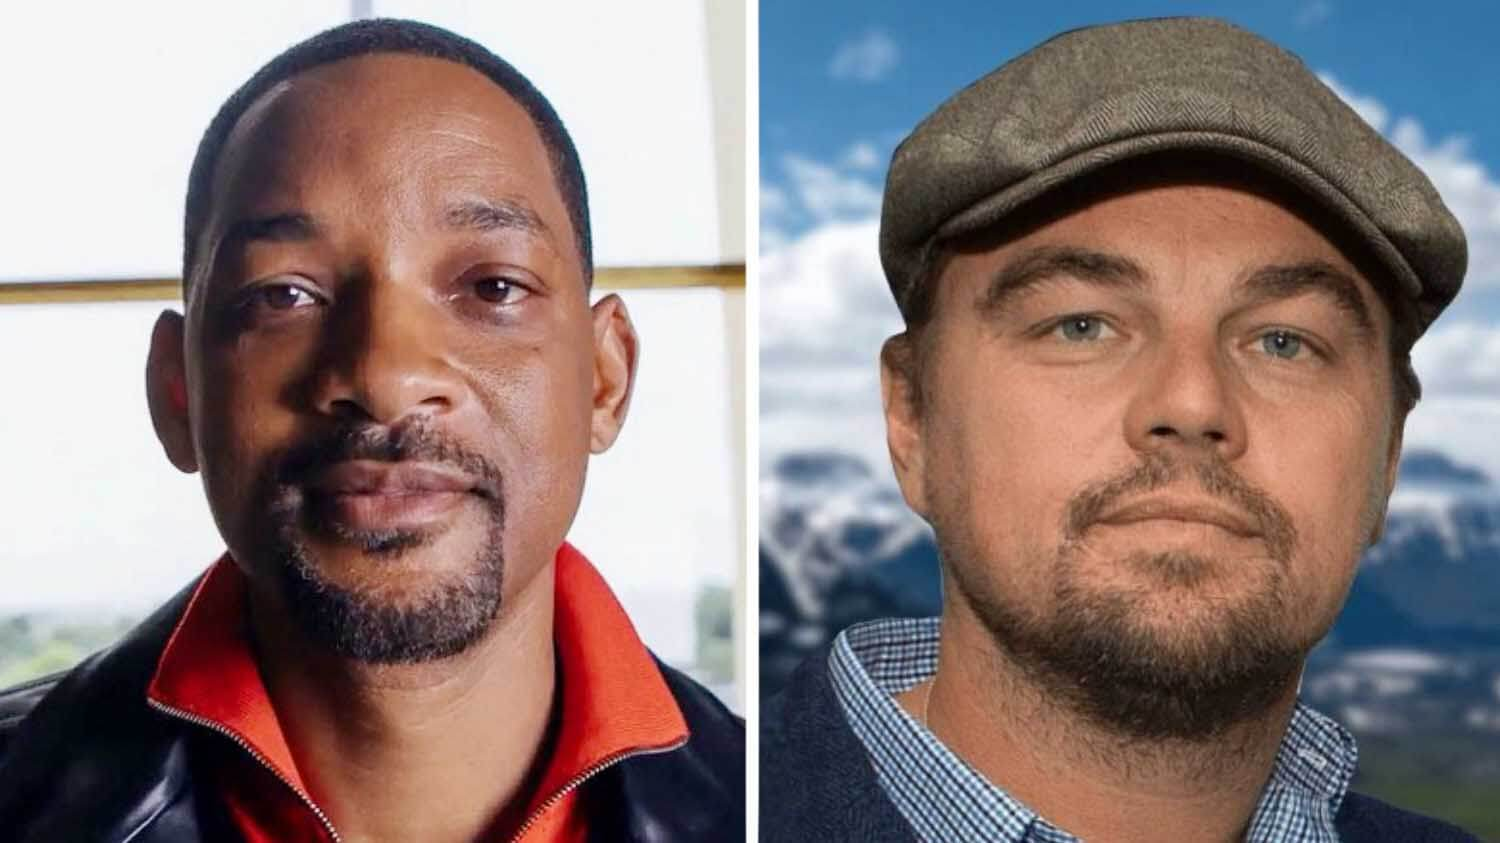 Leonardo DiCaprio and Will Smith Just Teamed Up to Save the Amazon